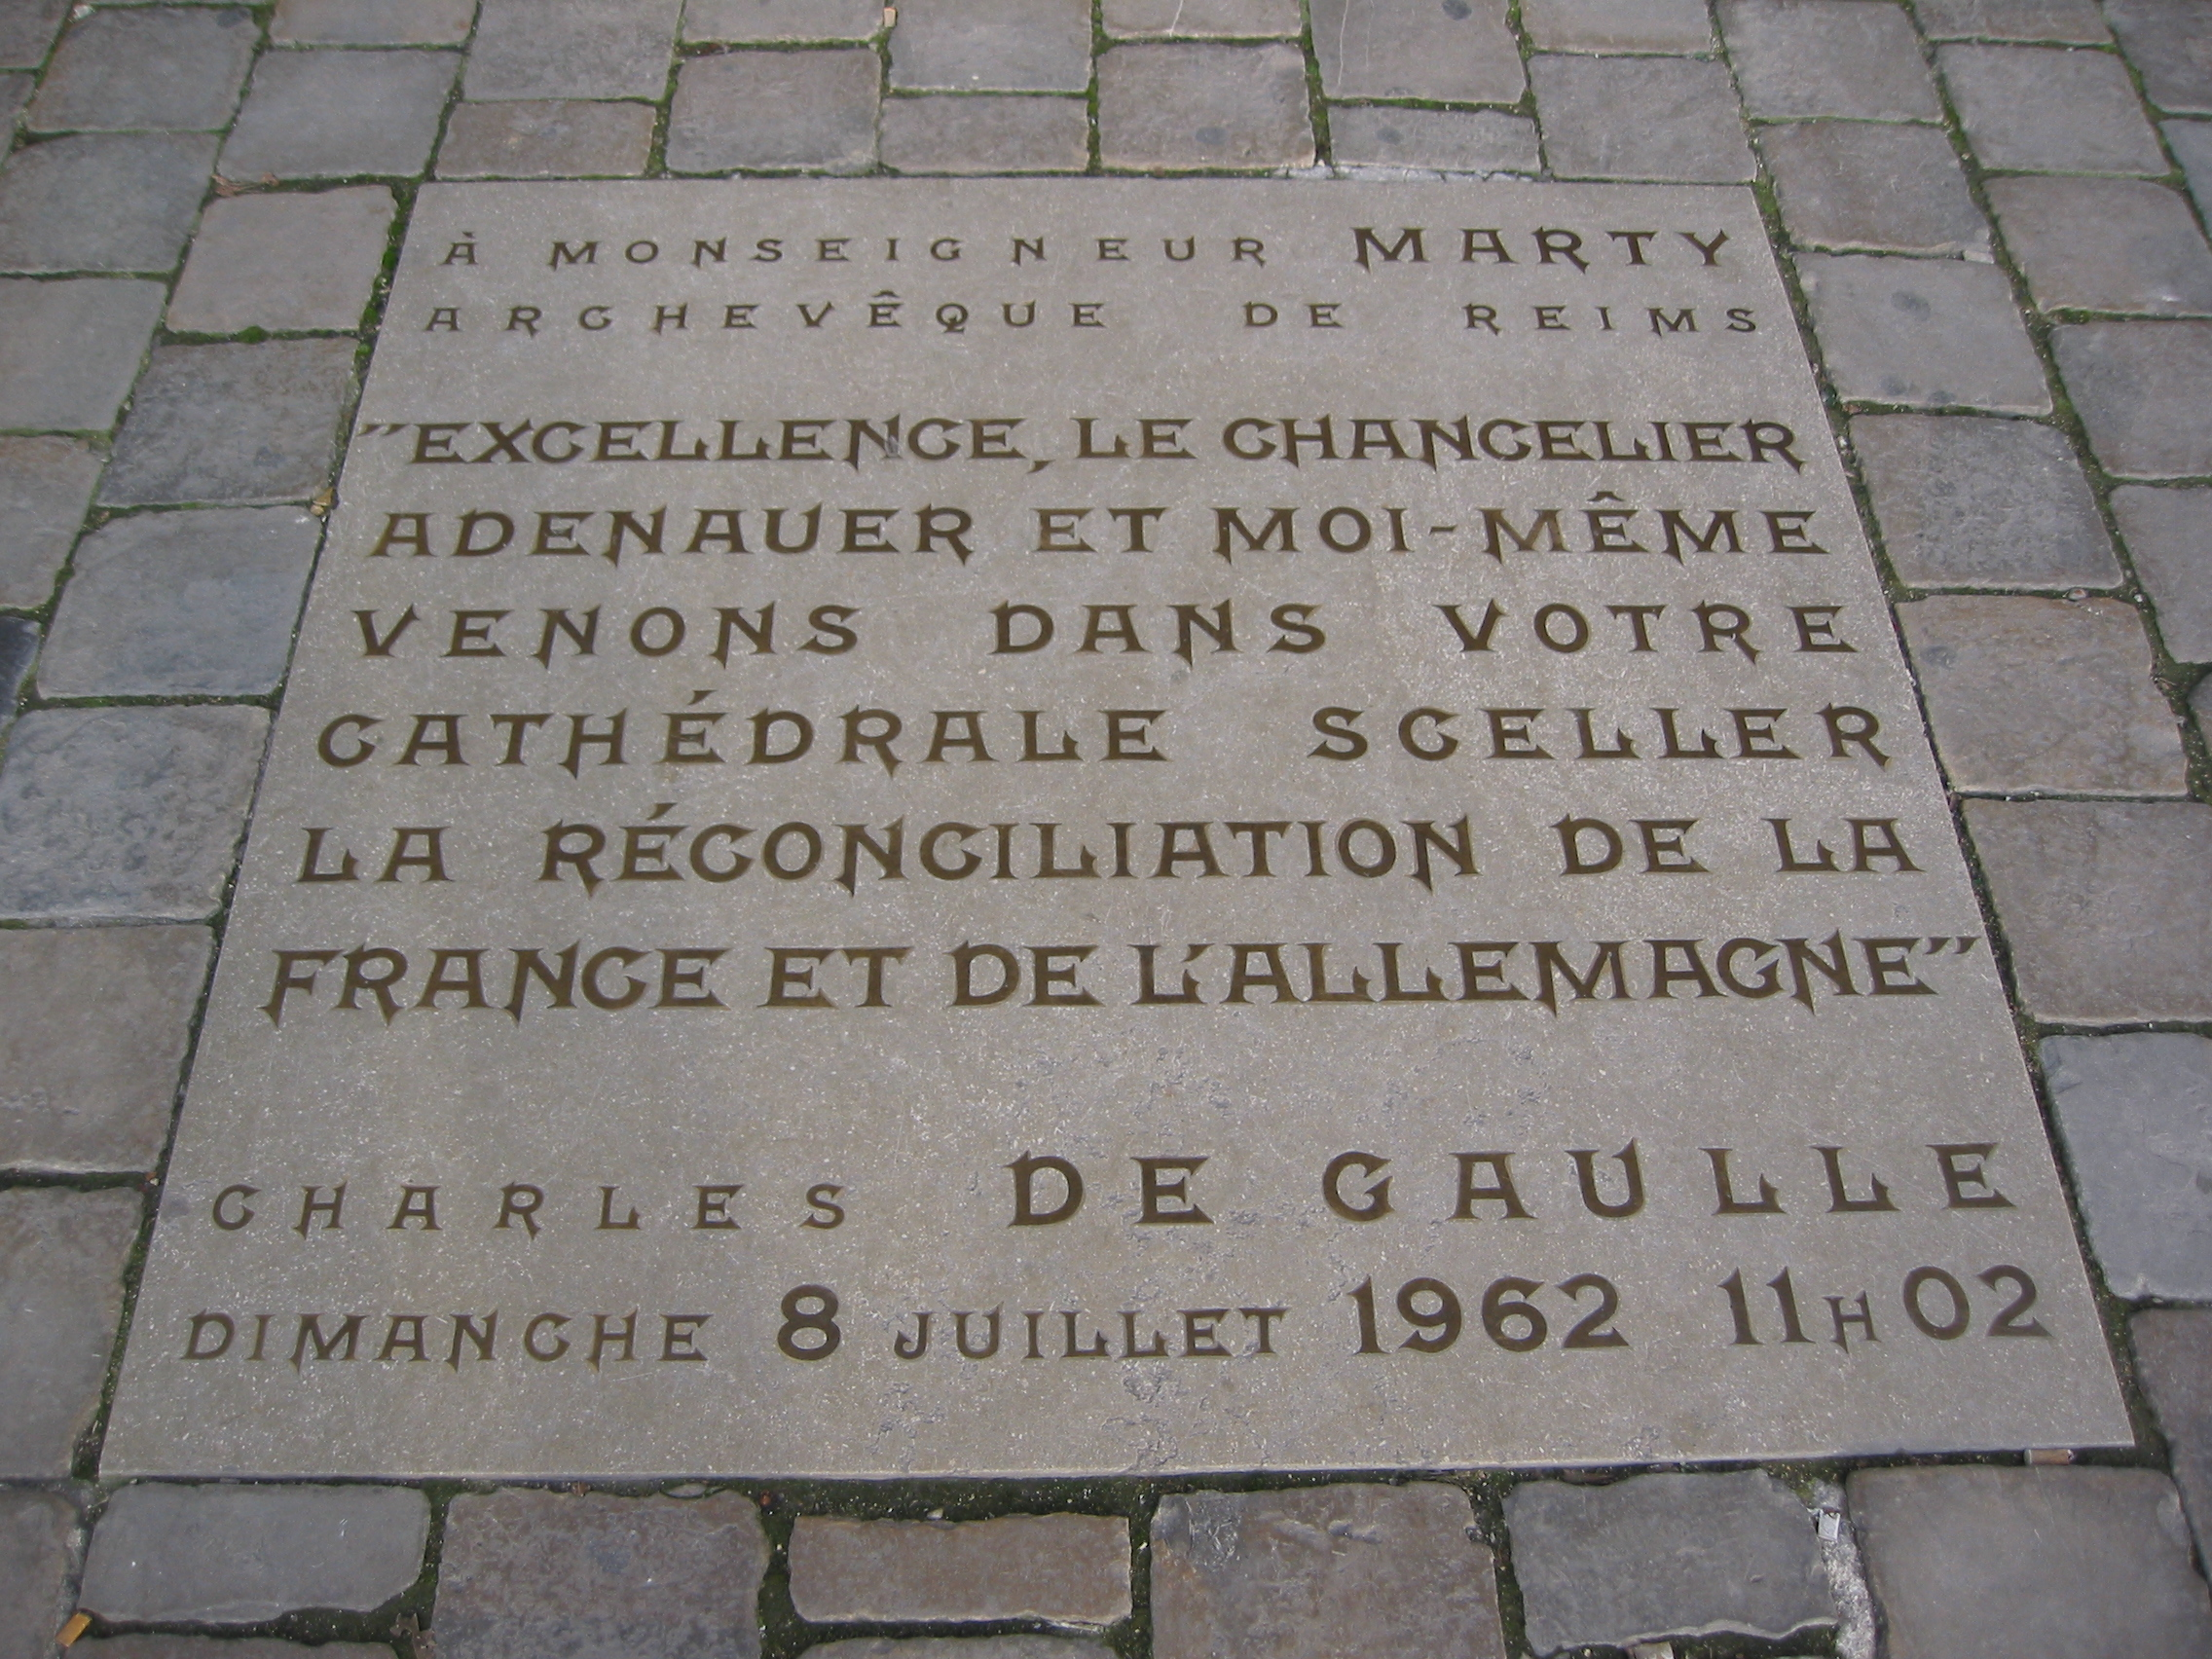 File:Floor tile in front of cathedral, Reims.jpg - Wikimedia Commons